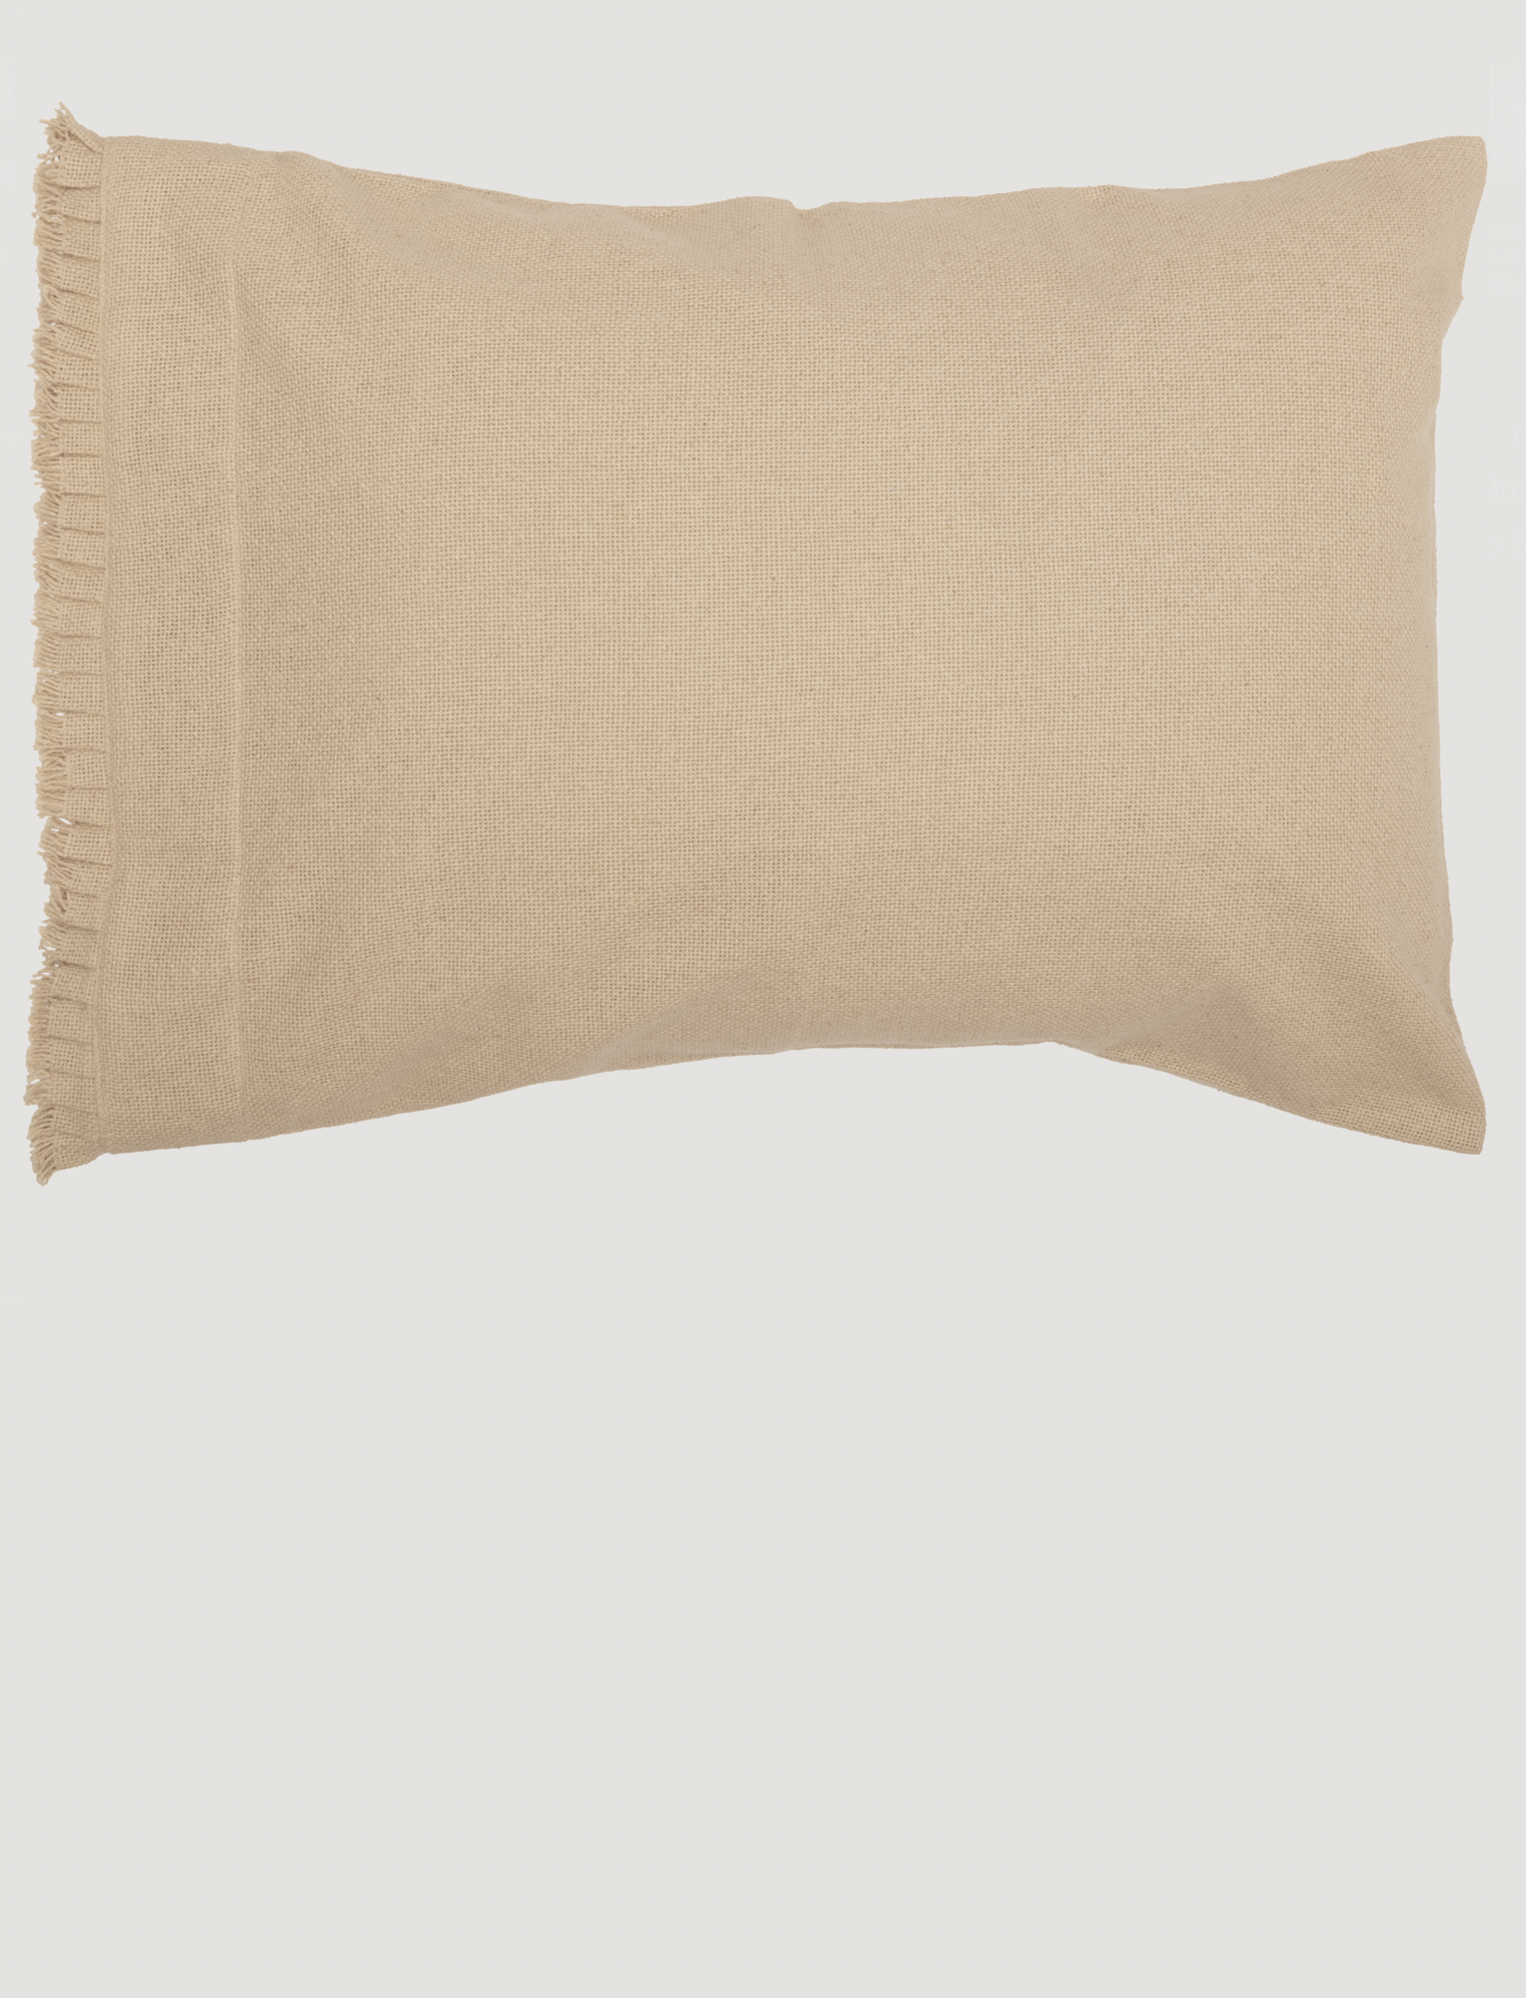 VHC Brands Burlap Vintage Ruffled Fringe Pillow Case Set of 2